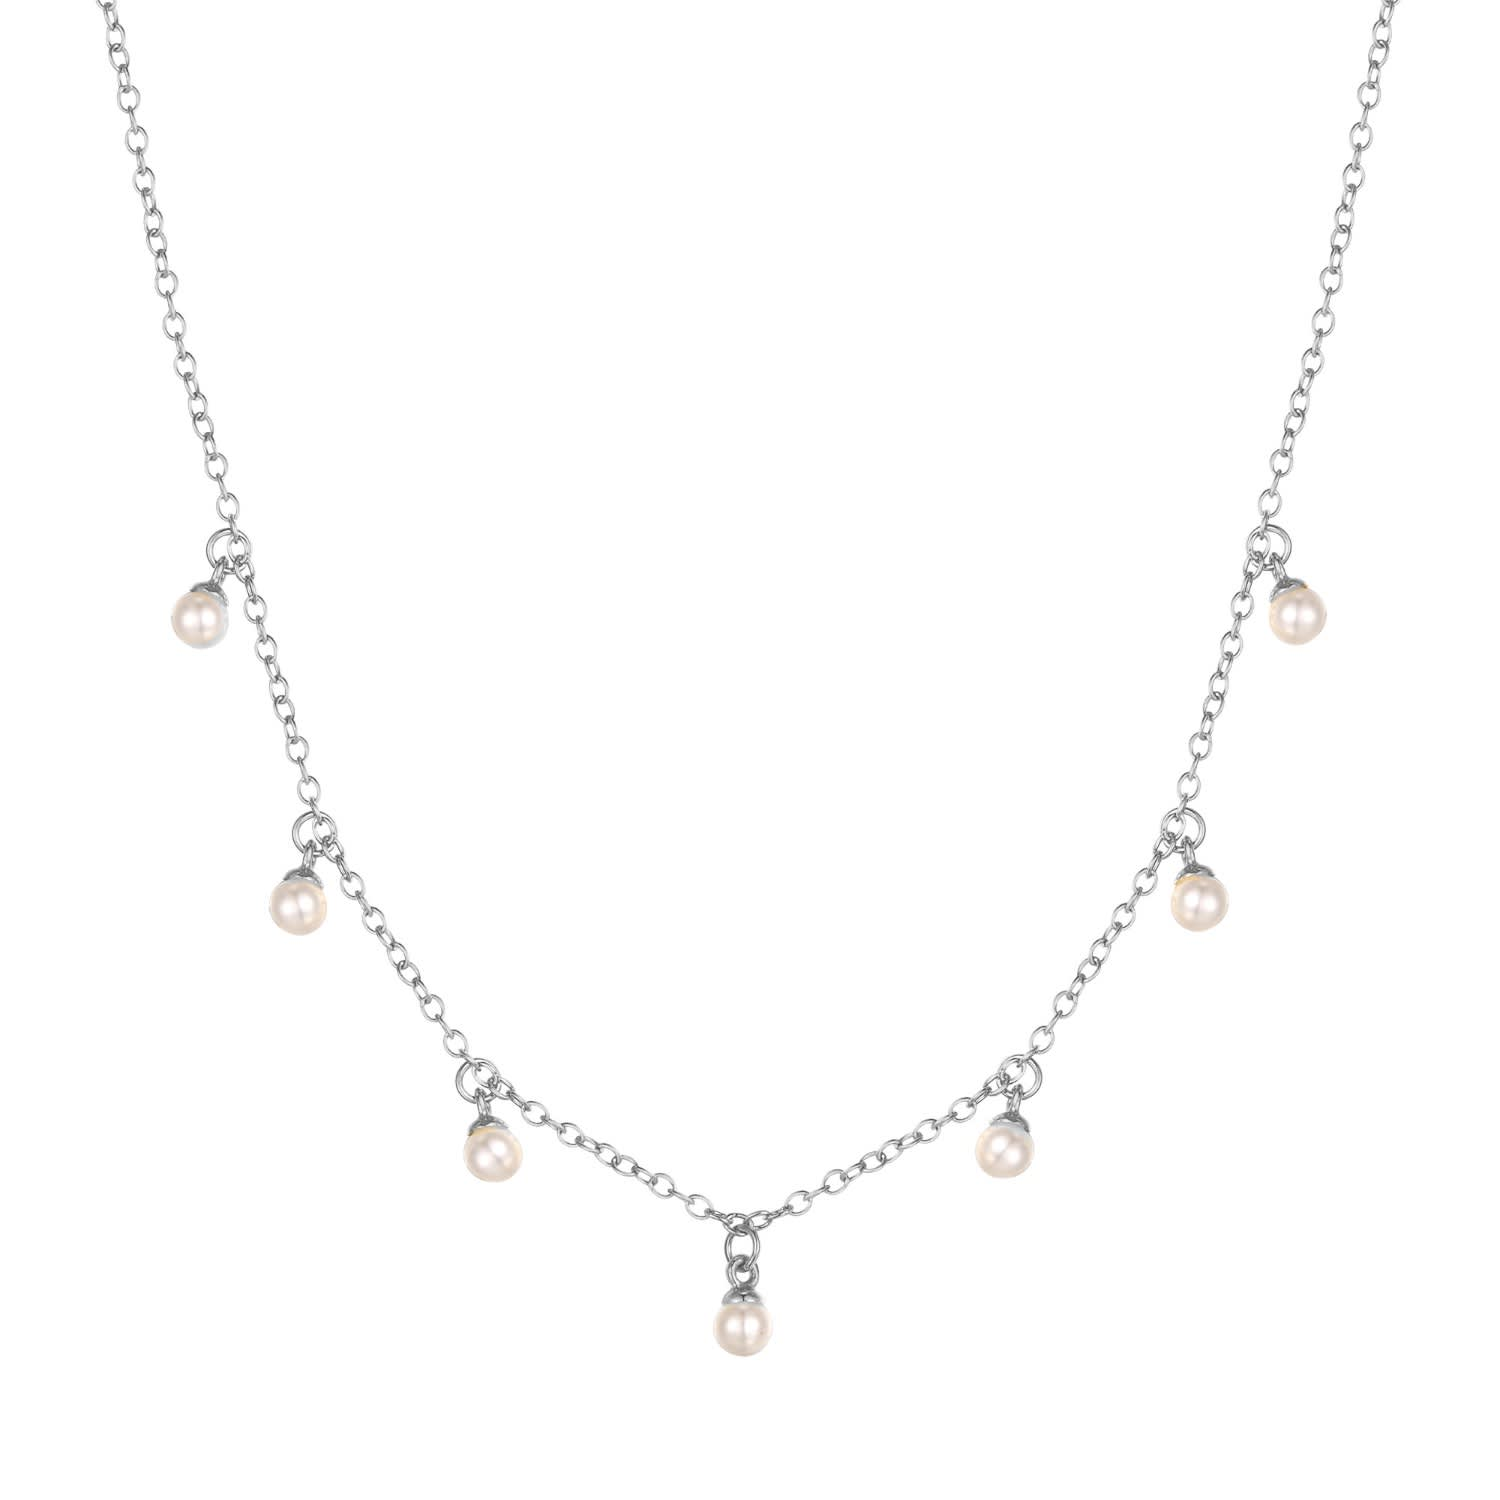 Ecoated Sterling Silver Pearl Drop Charm Necklace by SEOL + GOLD